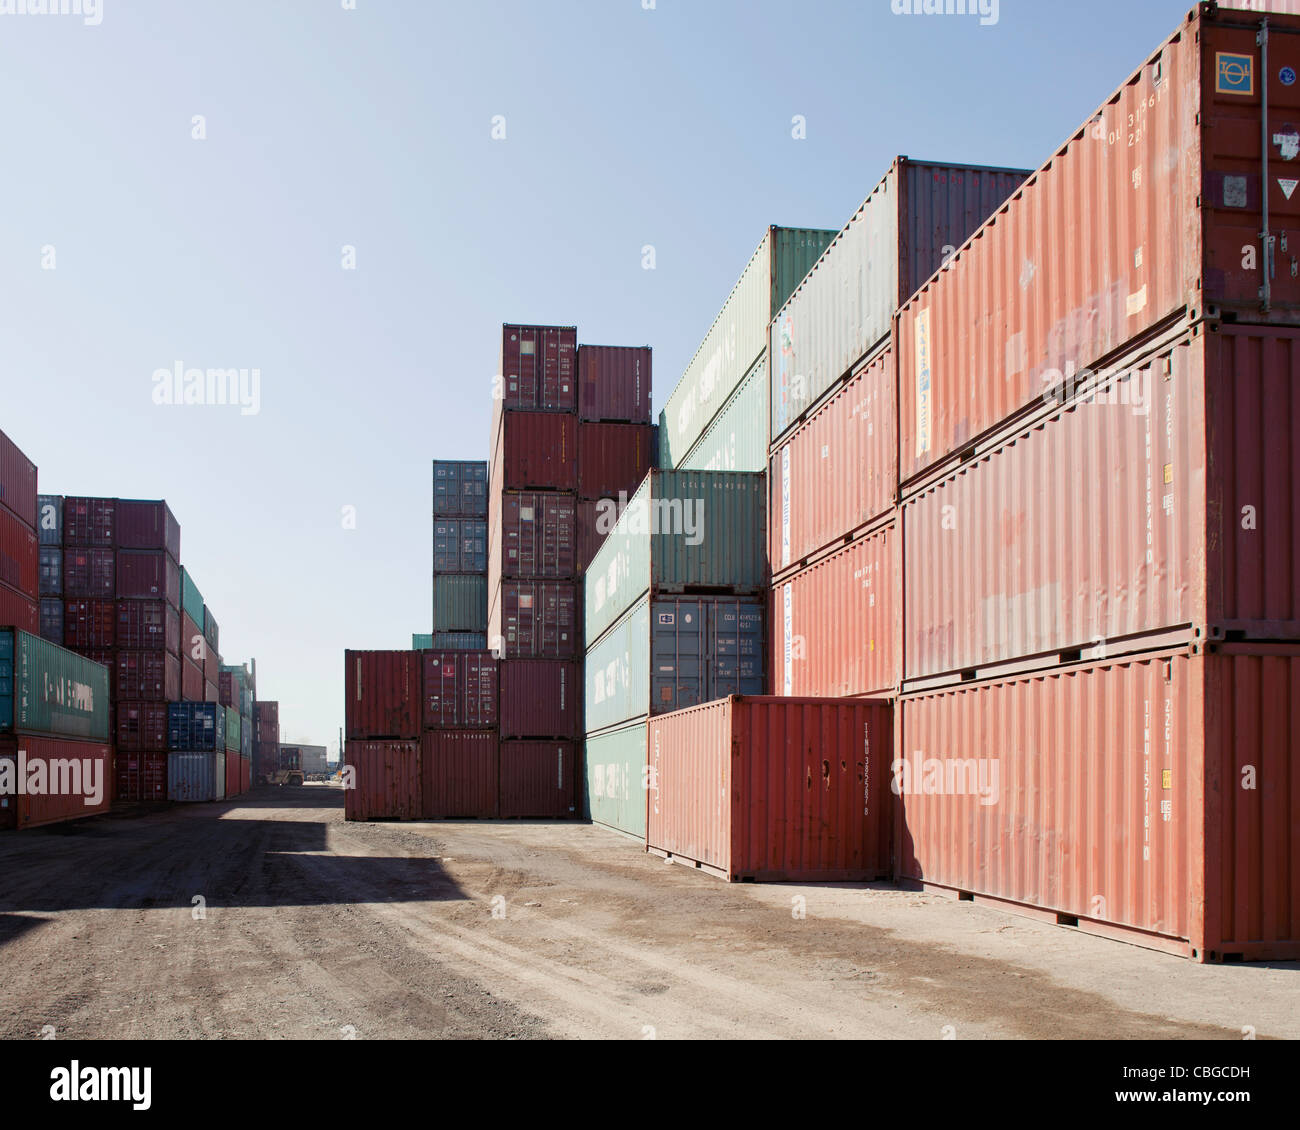 Large containers on commercial dock in Long Beach, California - Stock Image